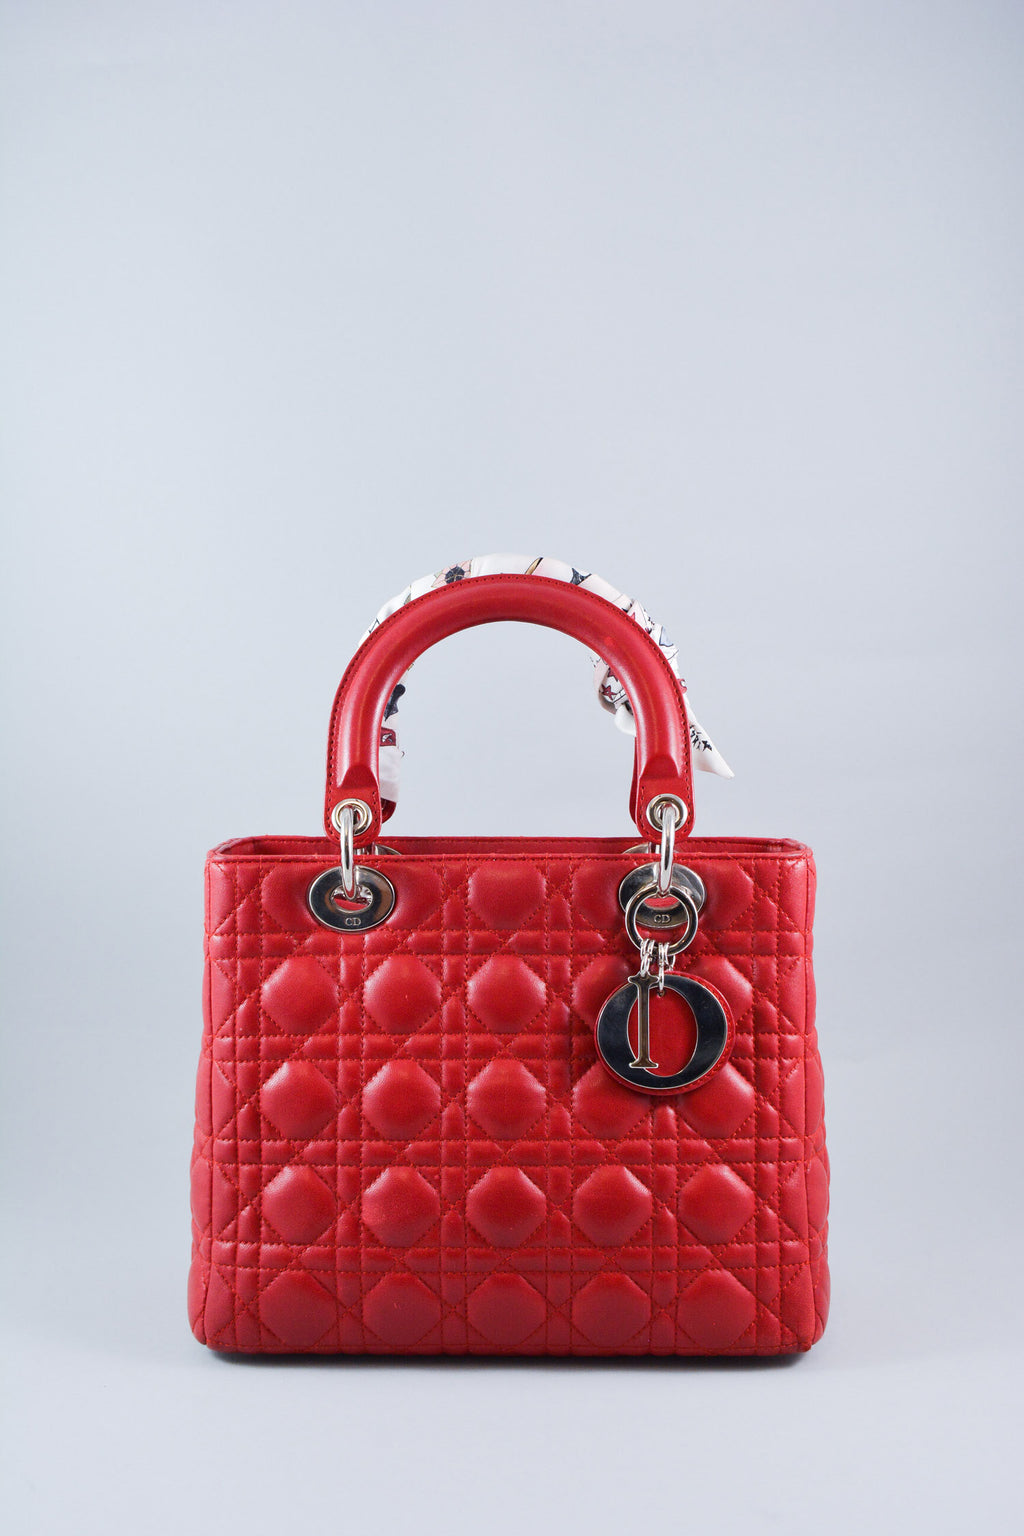 Dior Lady Red Leather Medium